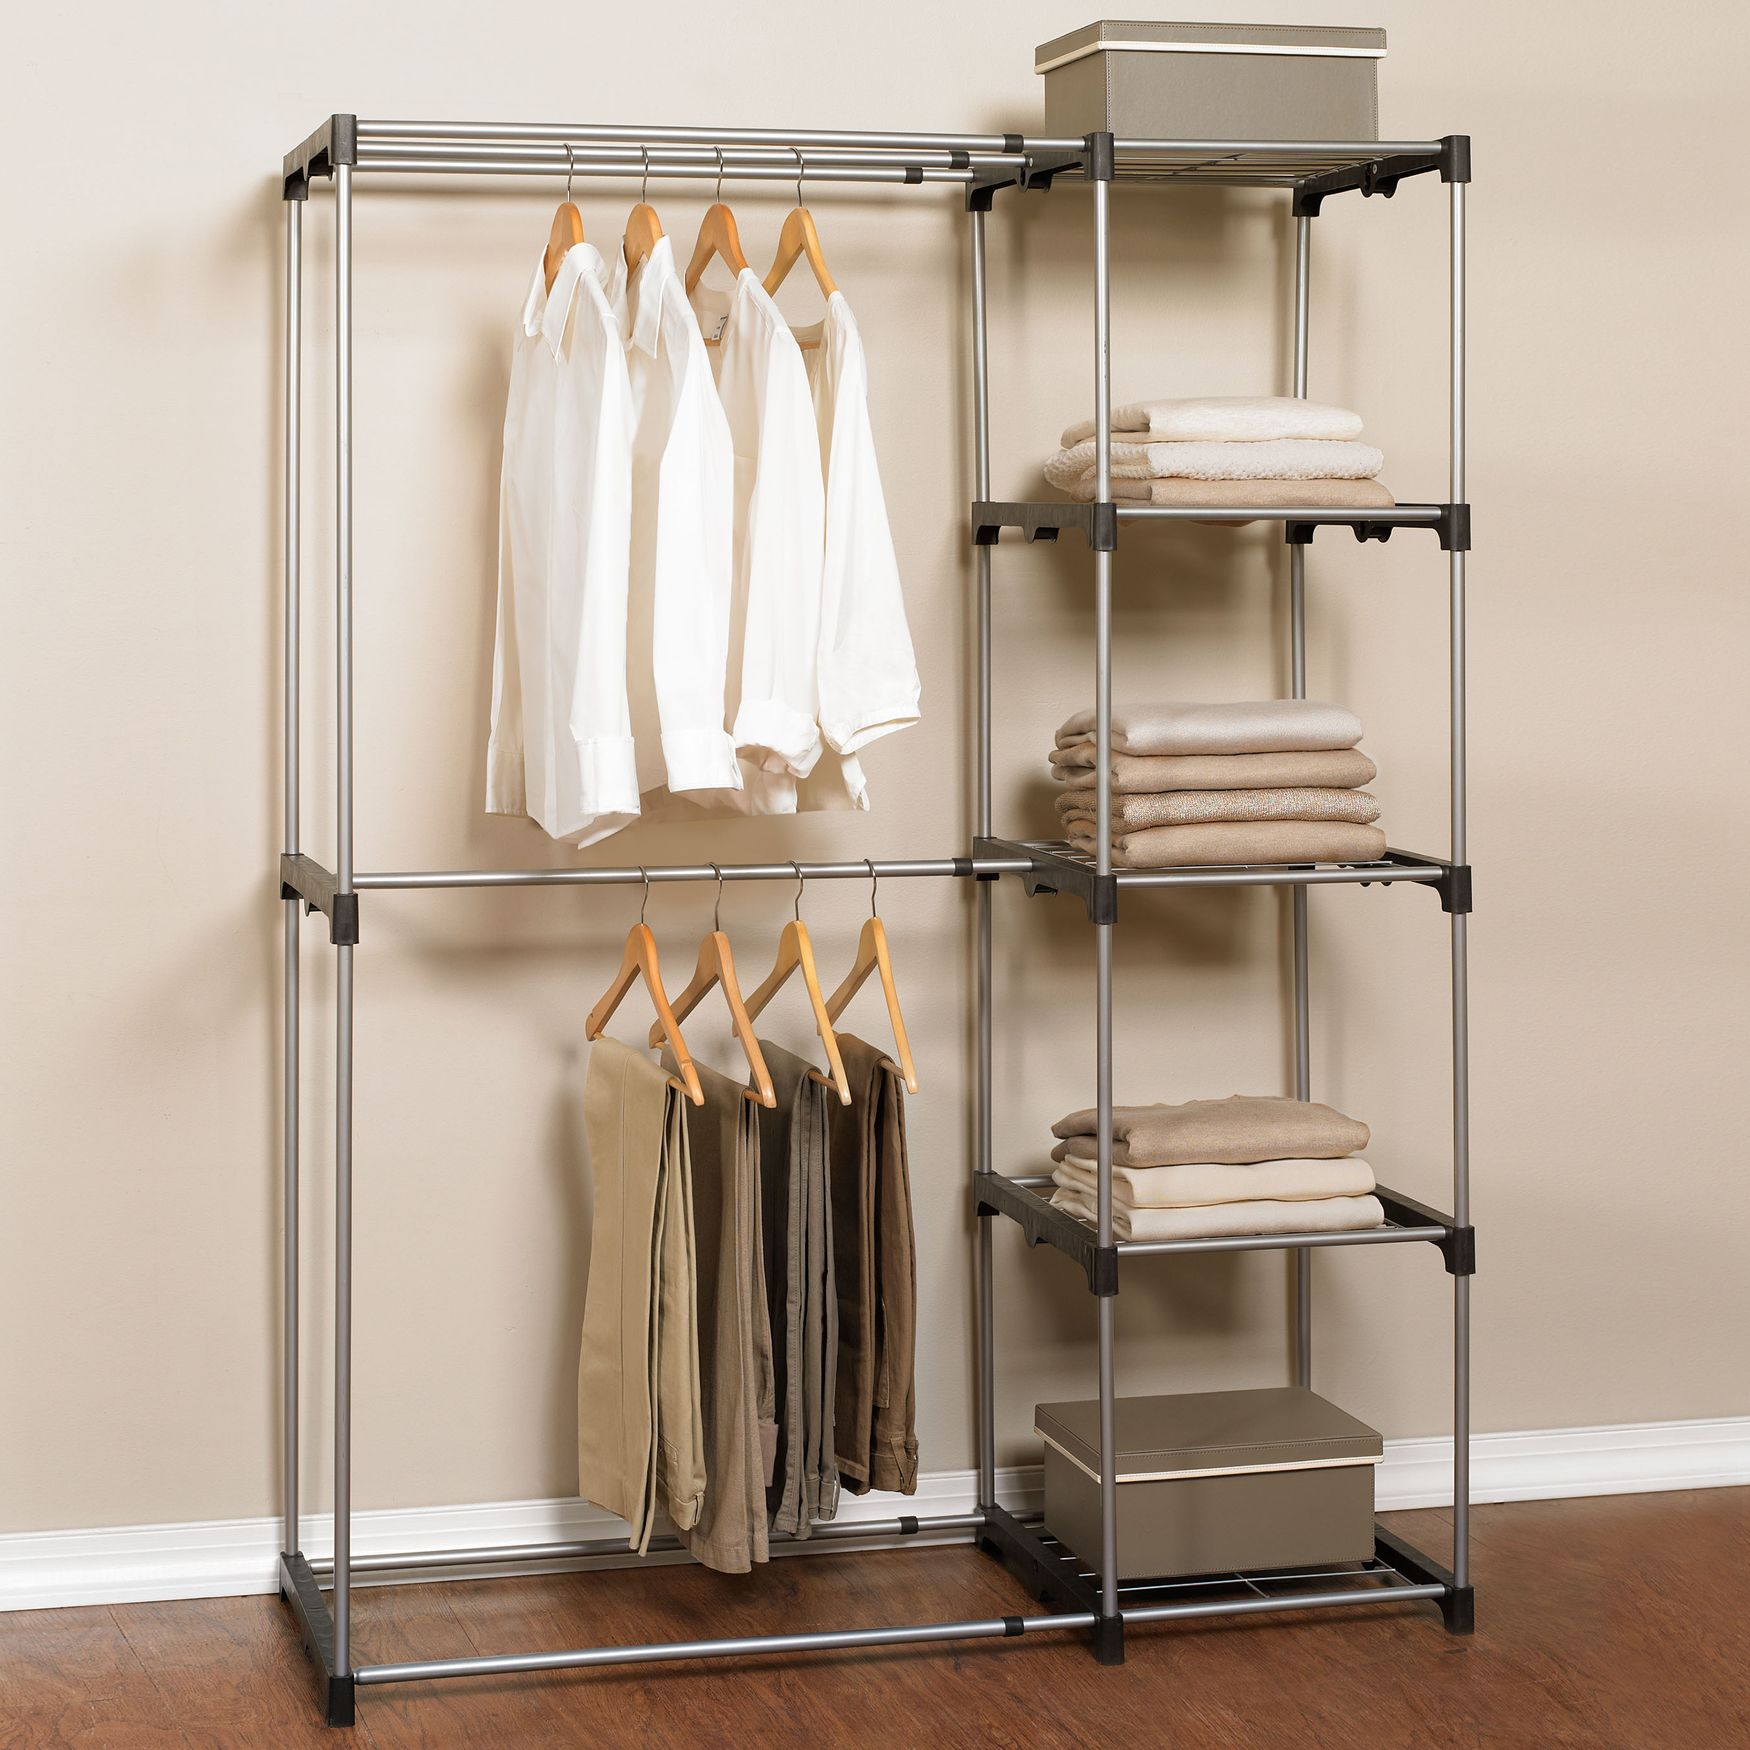 our garment rack with shelves instantly creates much needed storage space hanging rods are. Black Bedroom Furniture Sets. Home Design Ideas